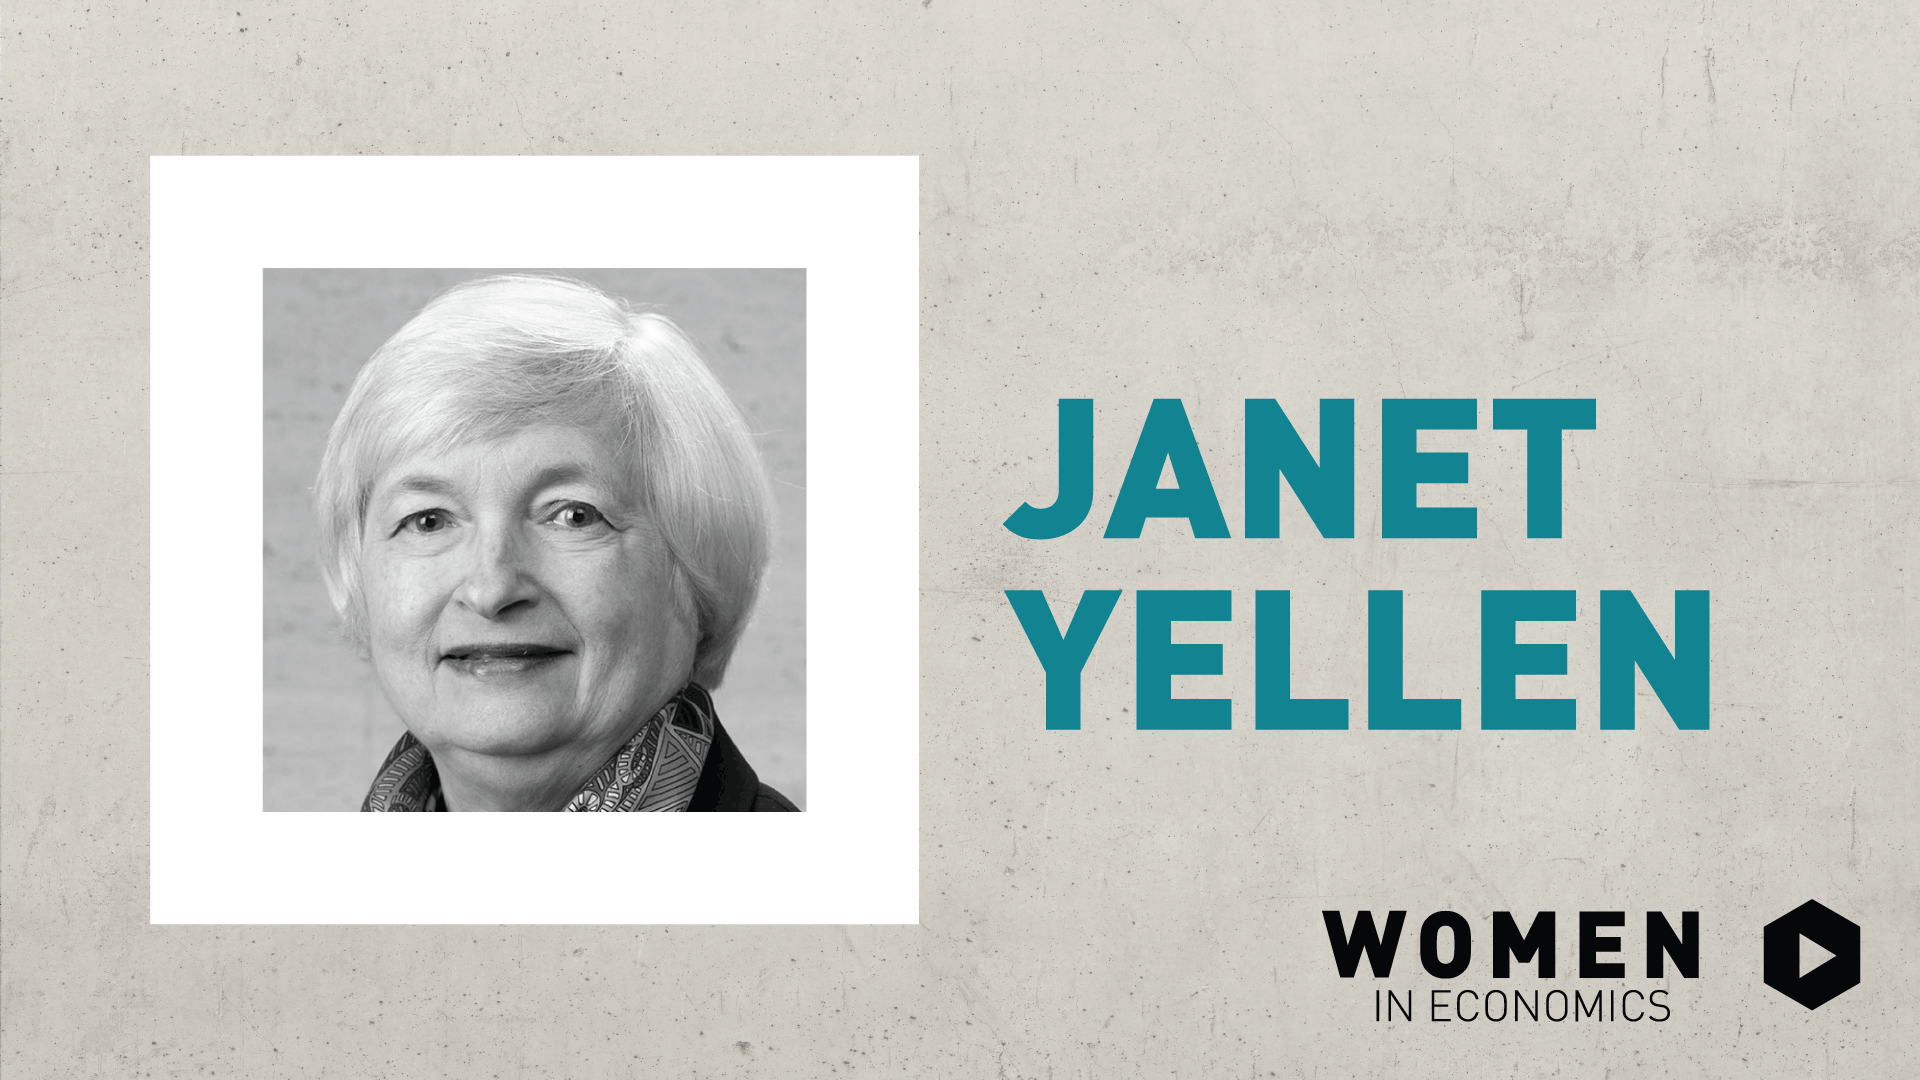 women in economics janet yellen women in economics janet yellen